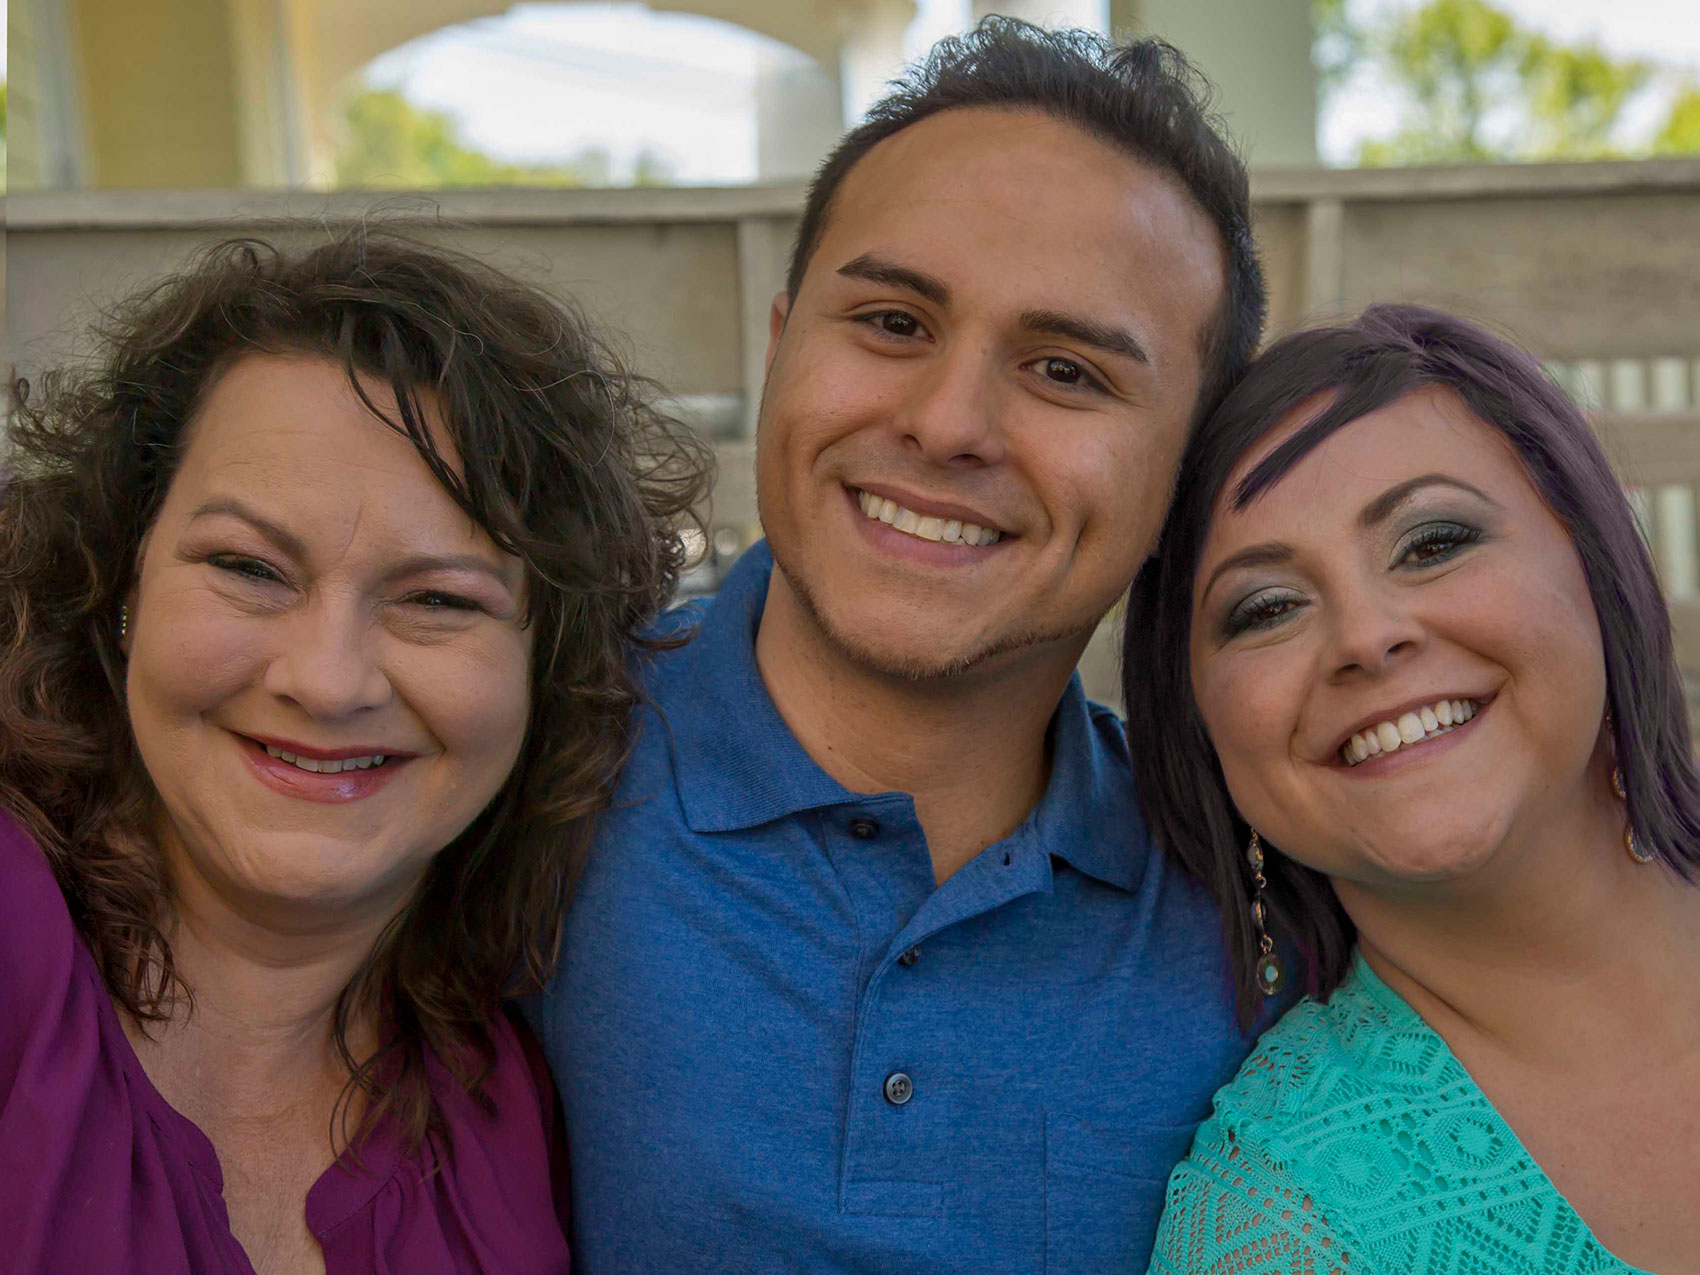 Young man smiling with his mom and sister